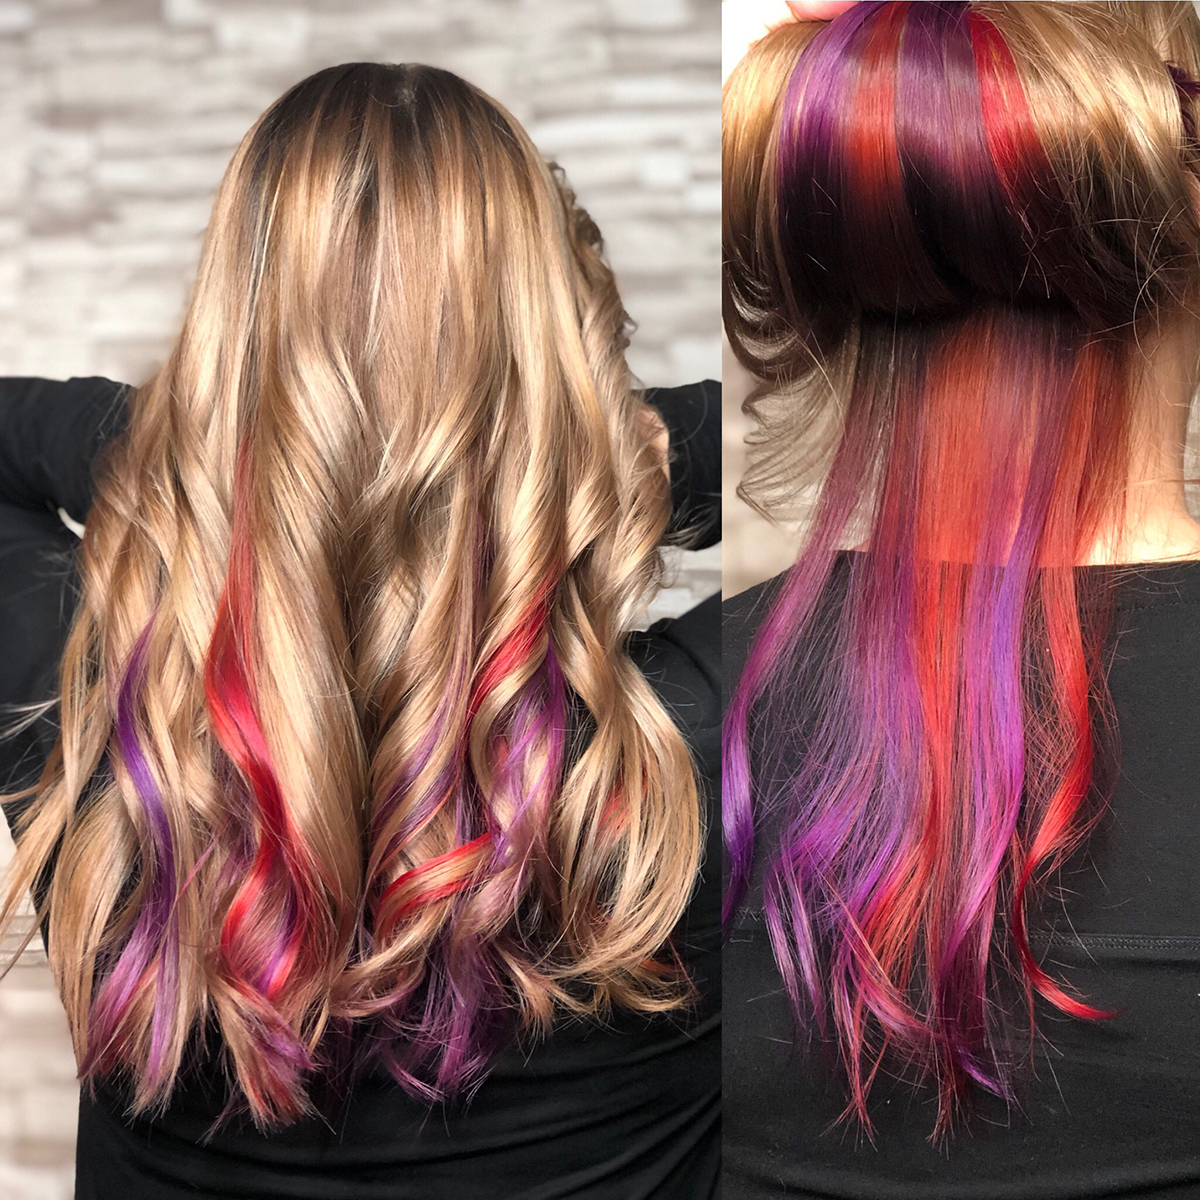 Hair coloring fashion multiple colors